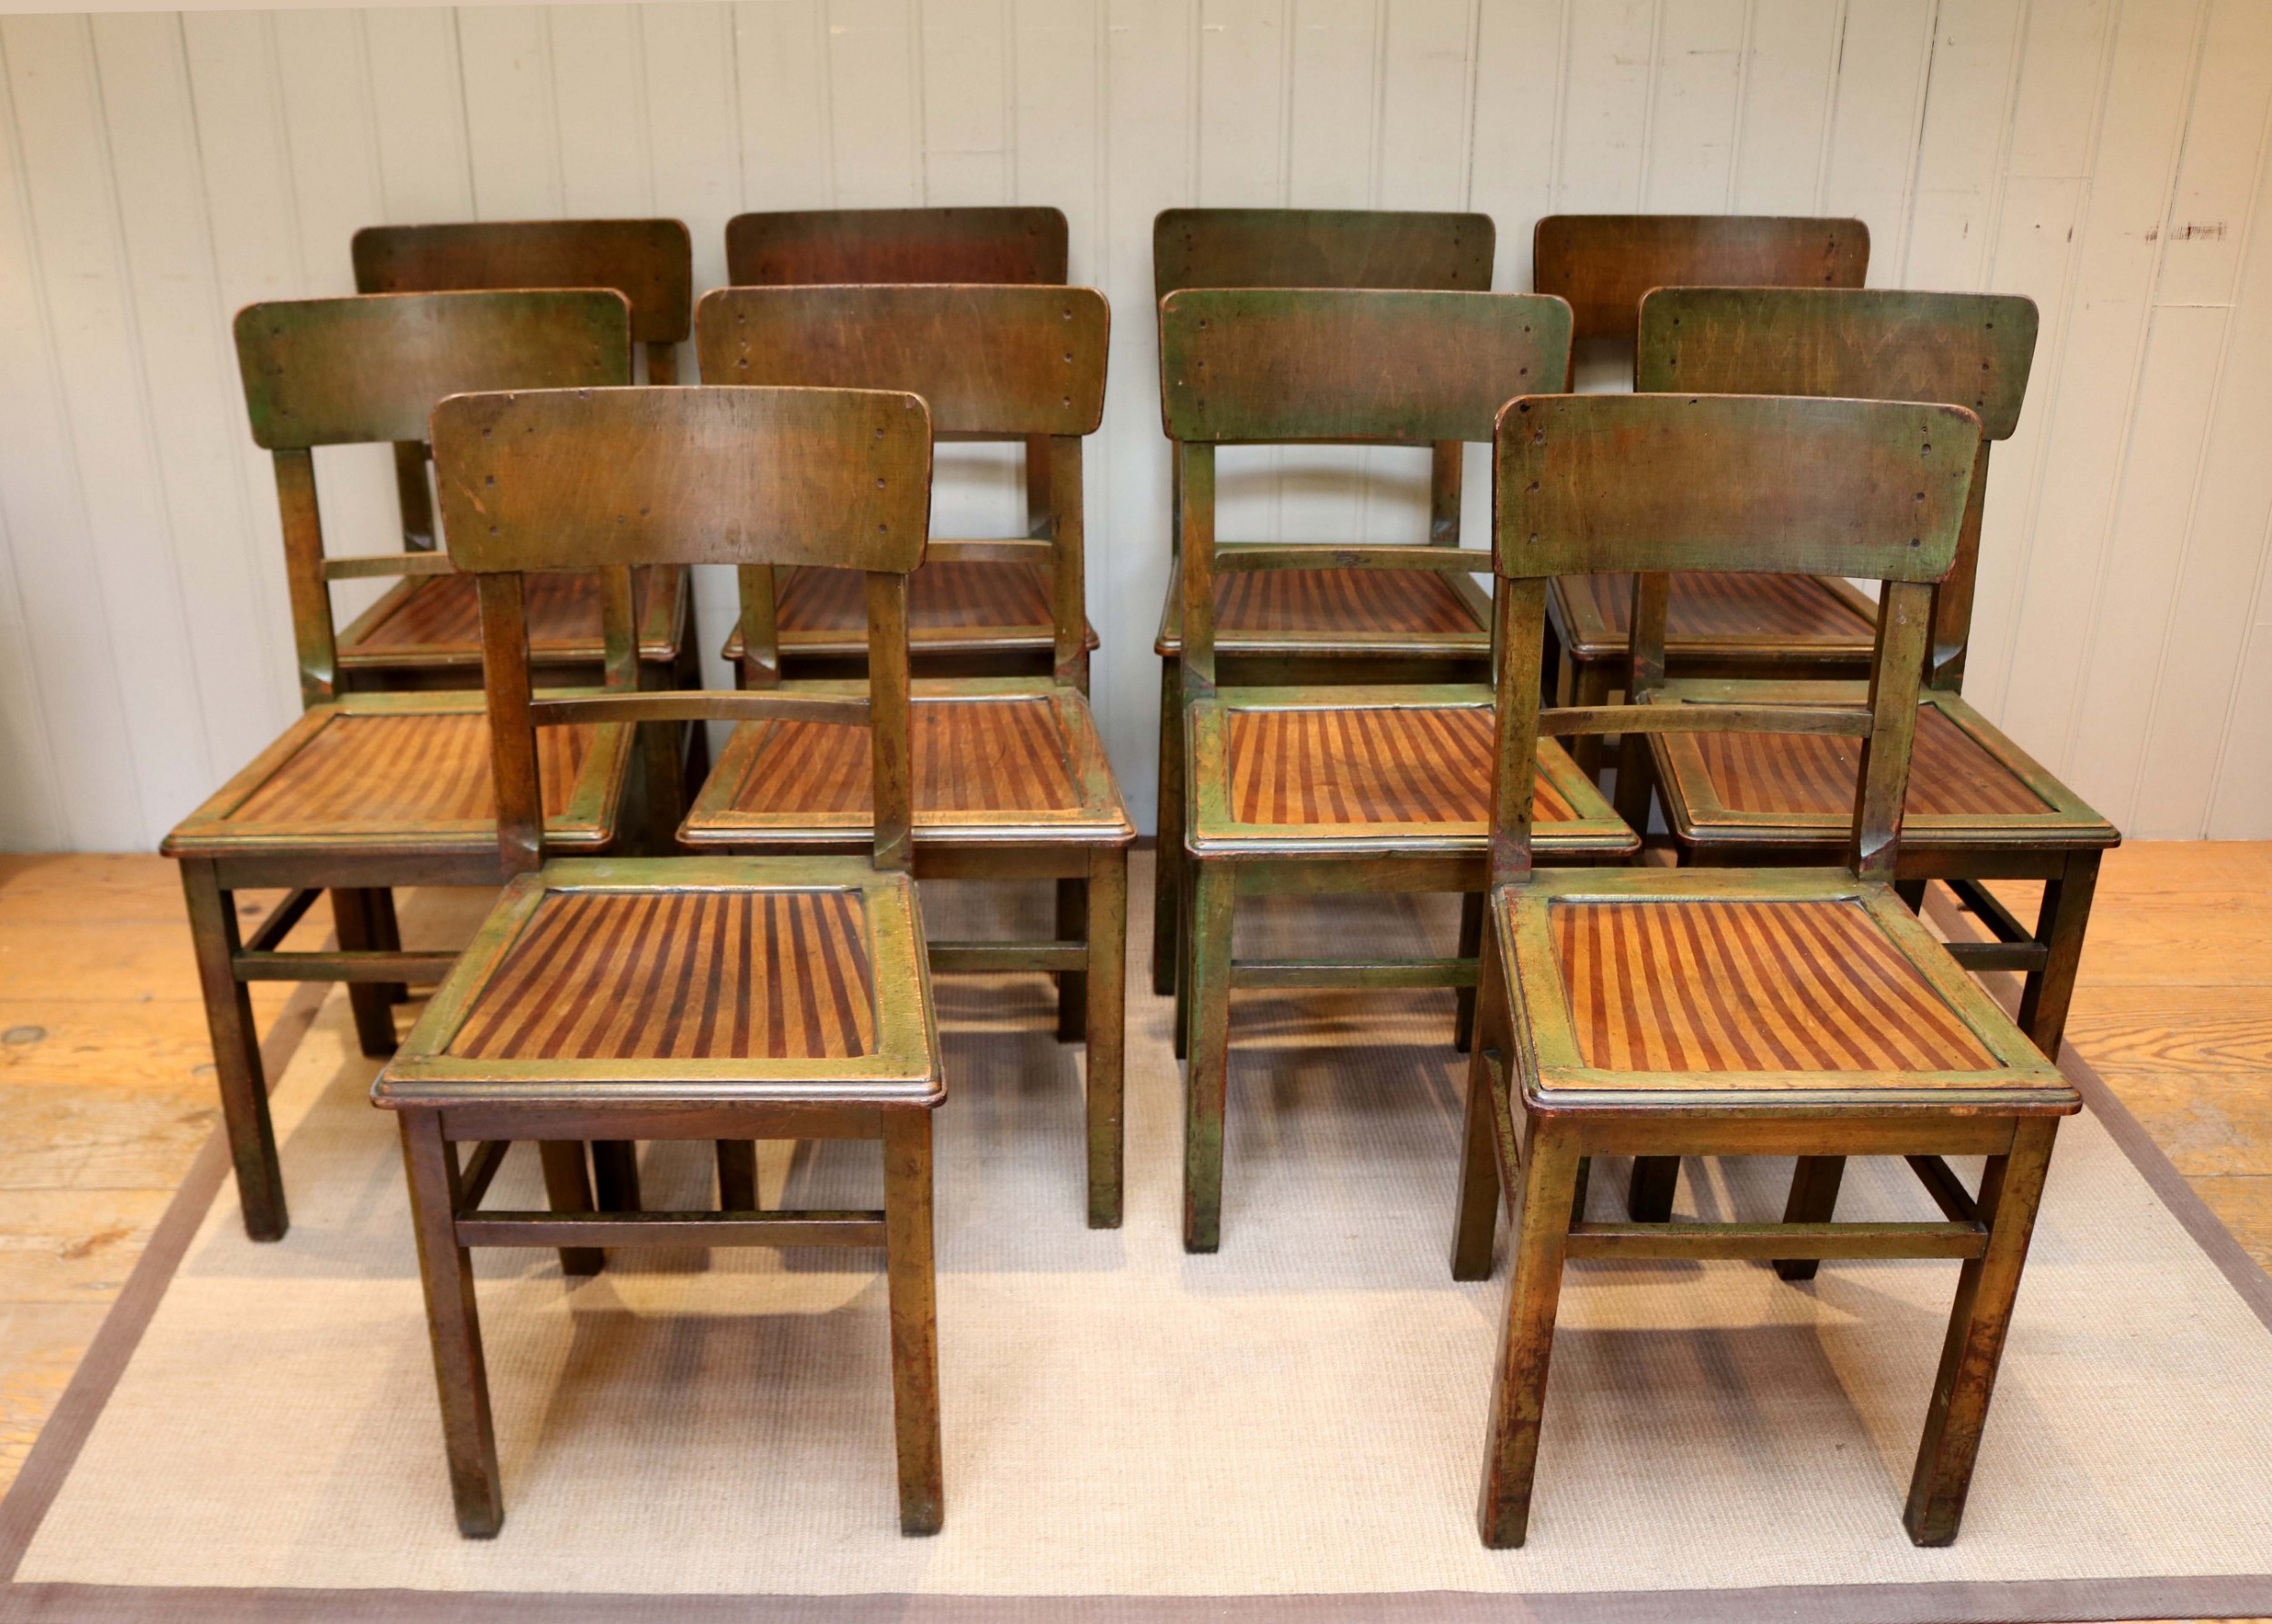 Astonishing Set Of Ten French Bistro Chairs 559848 Sellingantiques Co Uk Download Free Architecture Designs Intelgarnamadebymaigaardcom